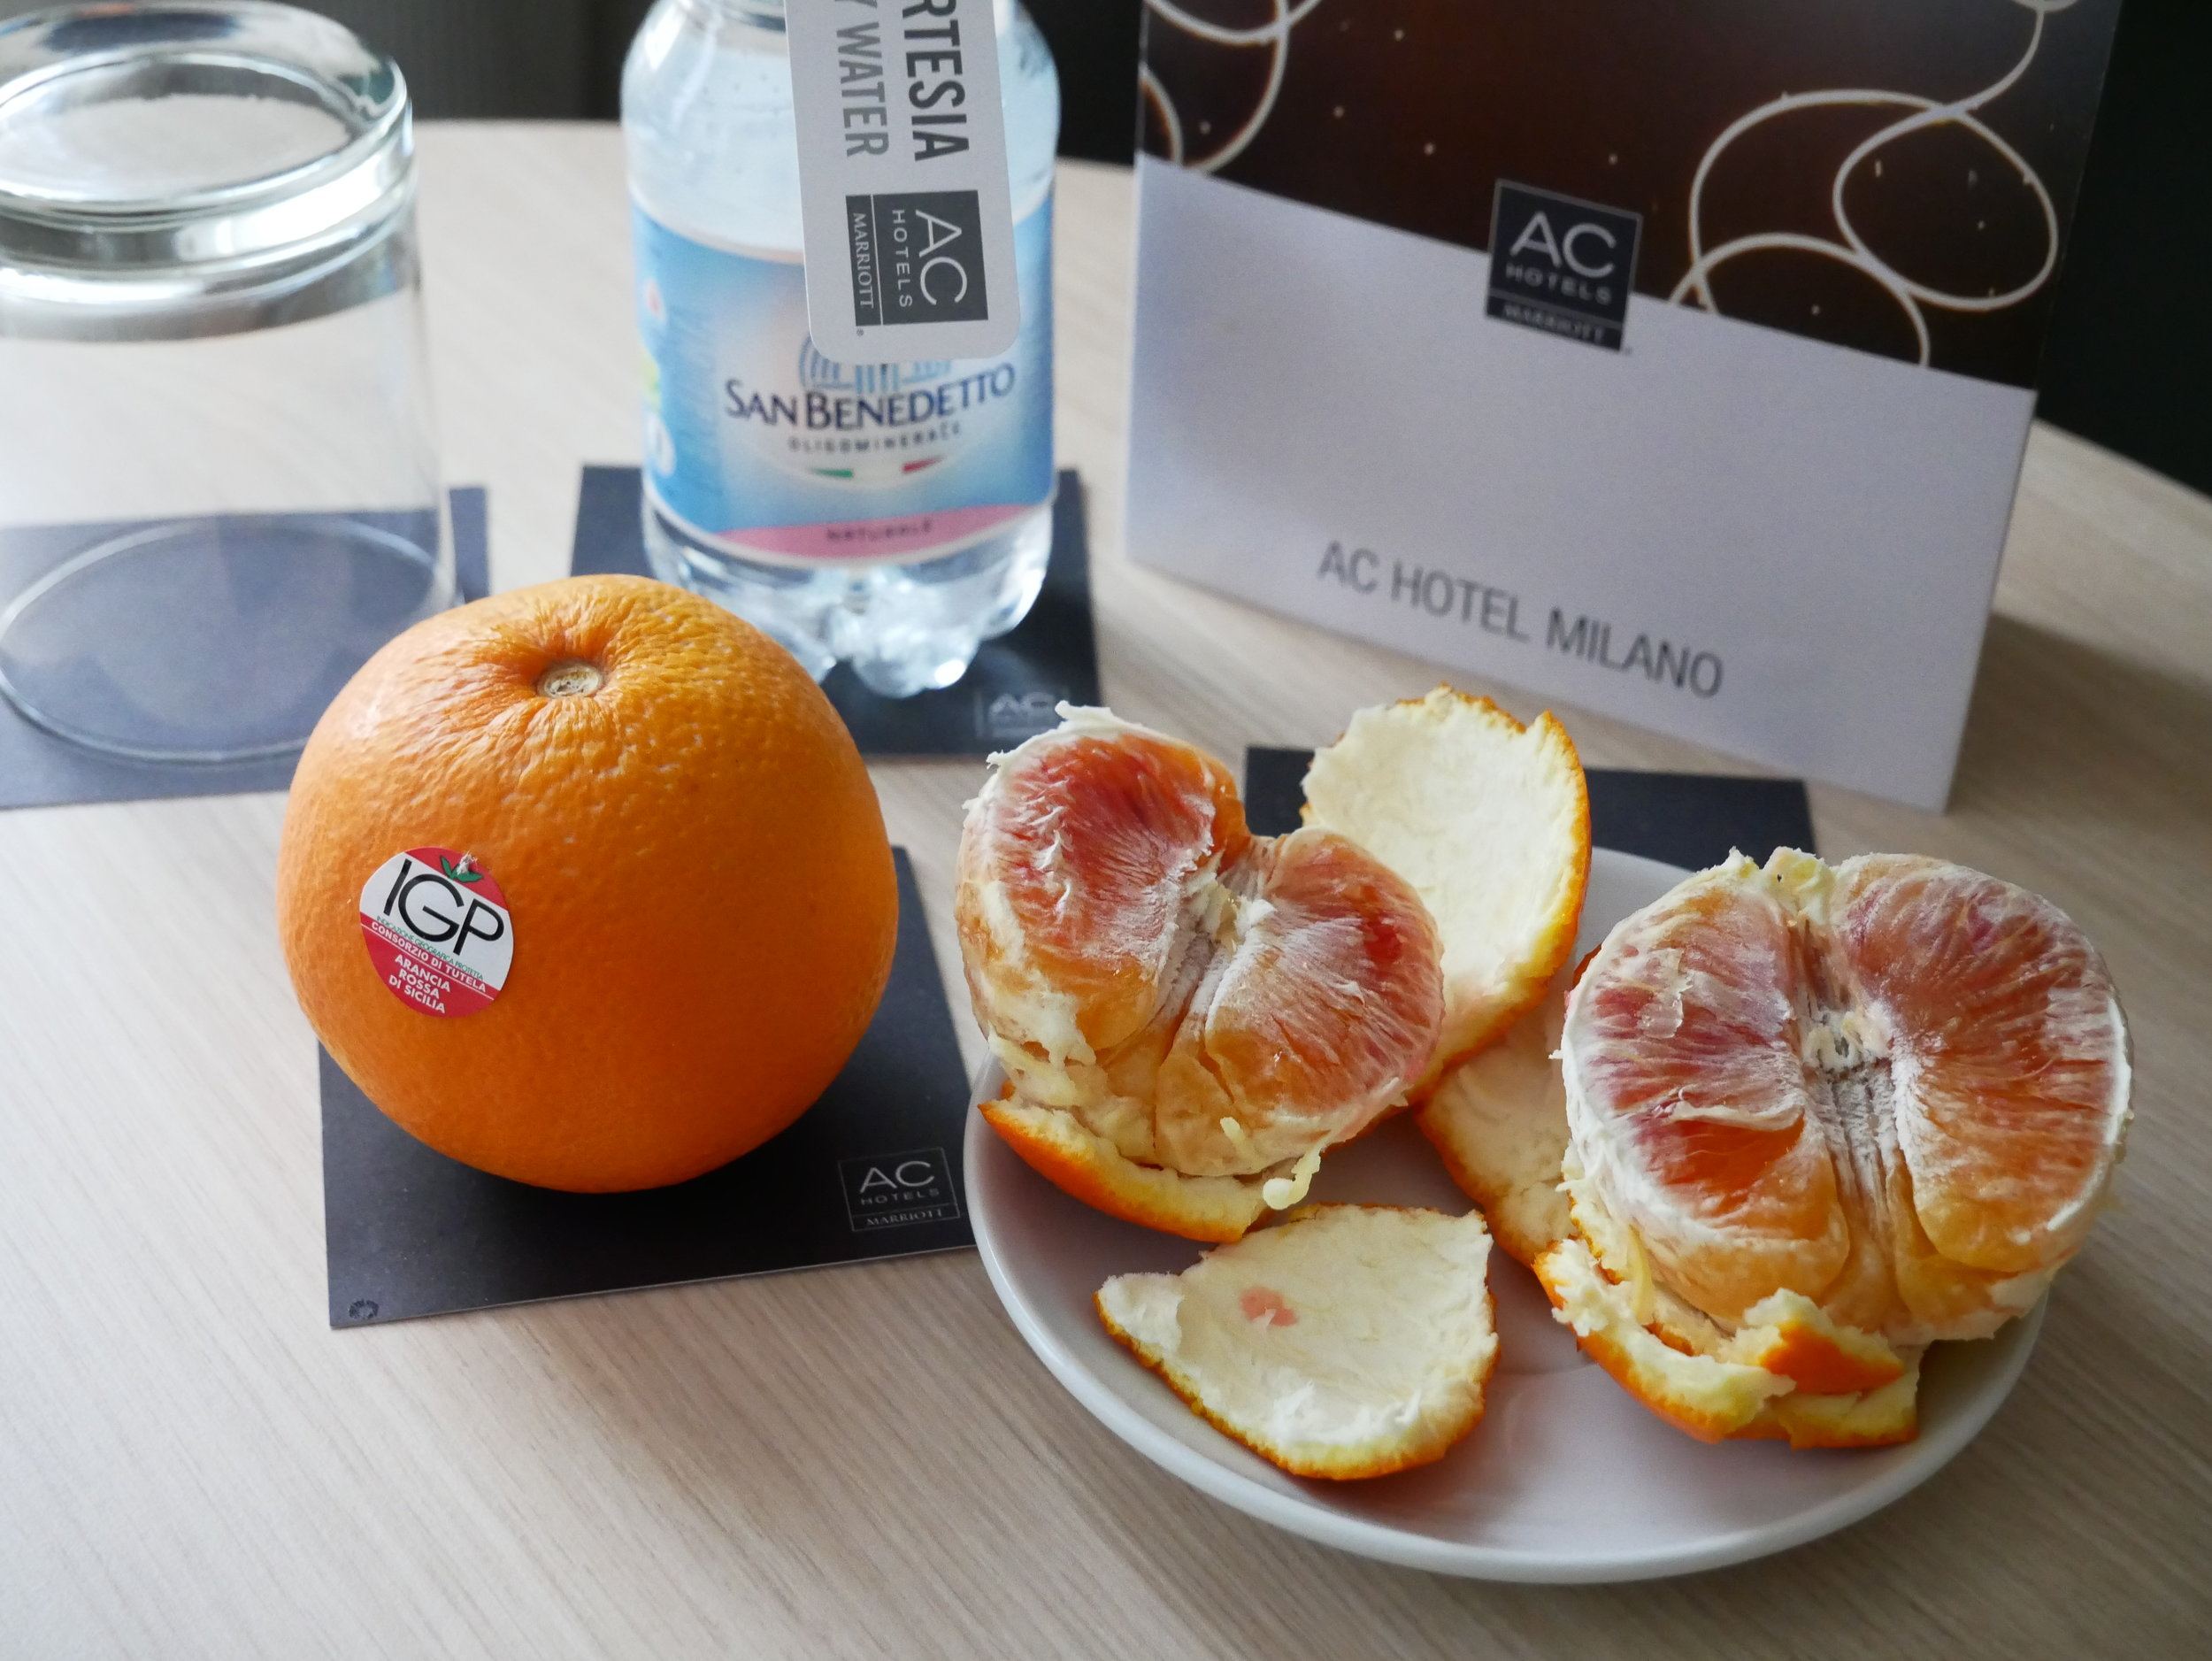 AC Hotel Milano welcome amenity